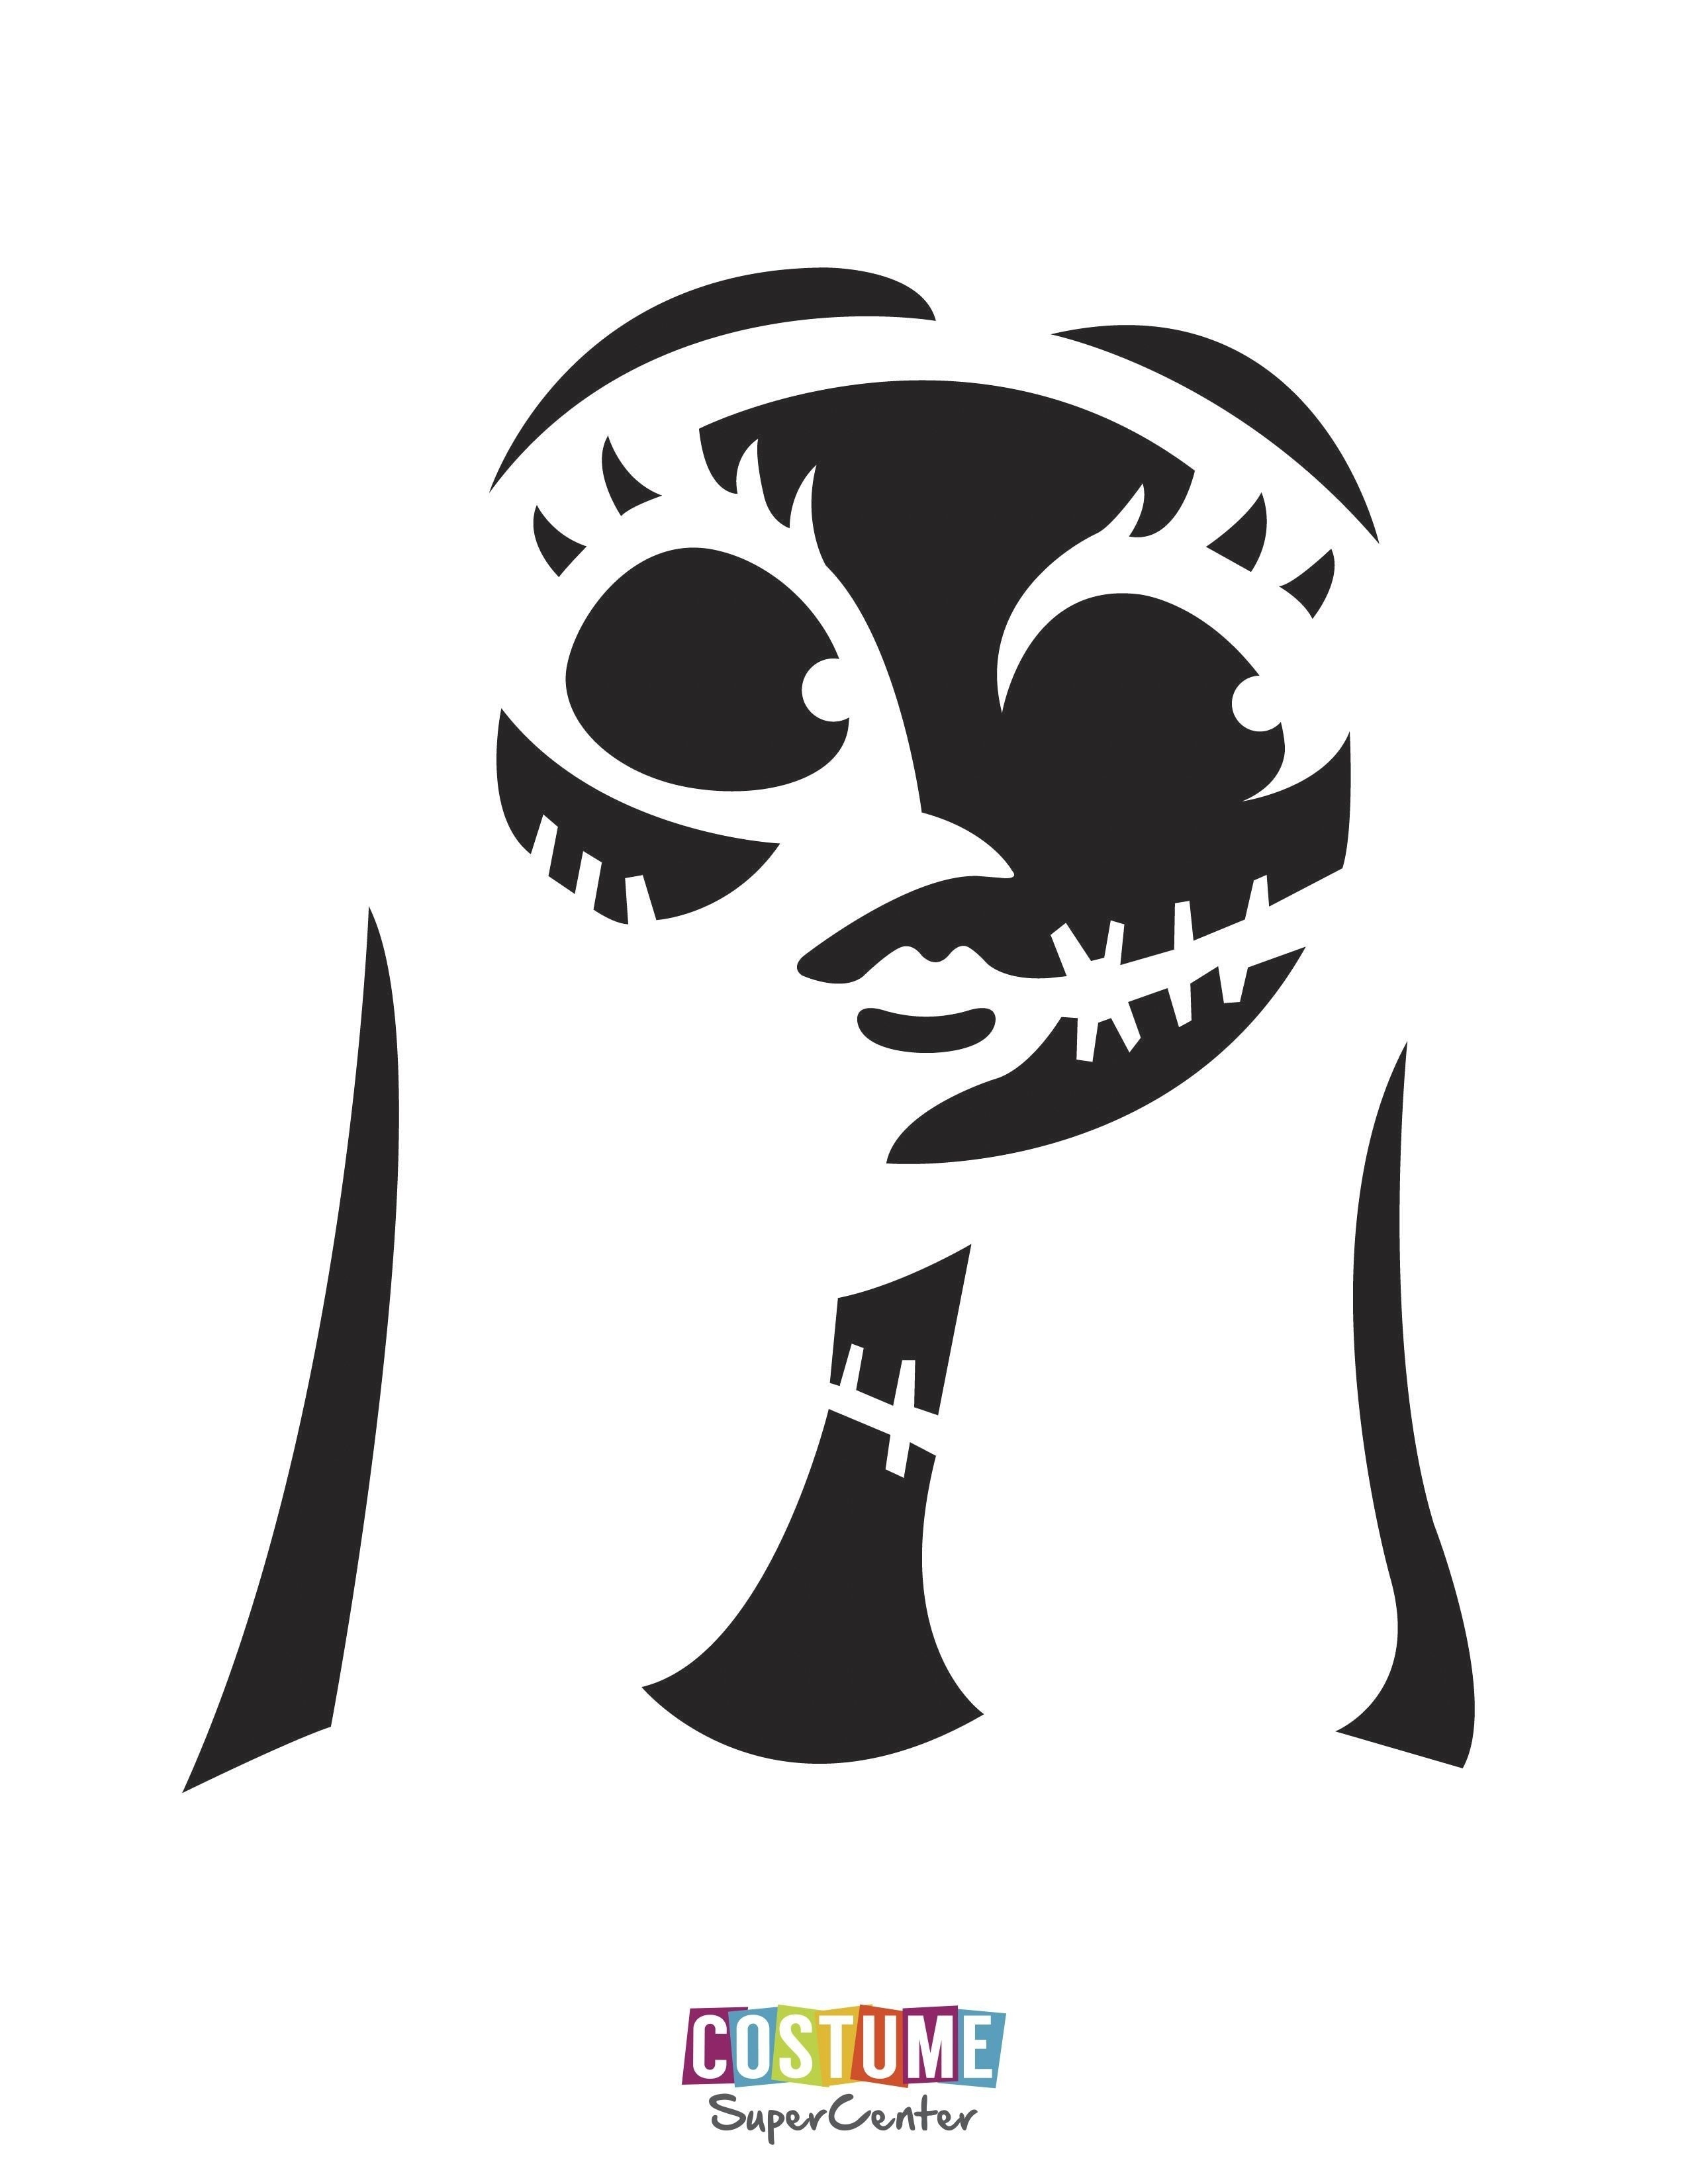 The Nightmare Before Christmas Pumpkin Stencils Free | Theveliger - Jack Skellington And Sally Pumpkin Stencils Free Printable